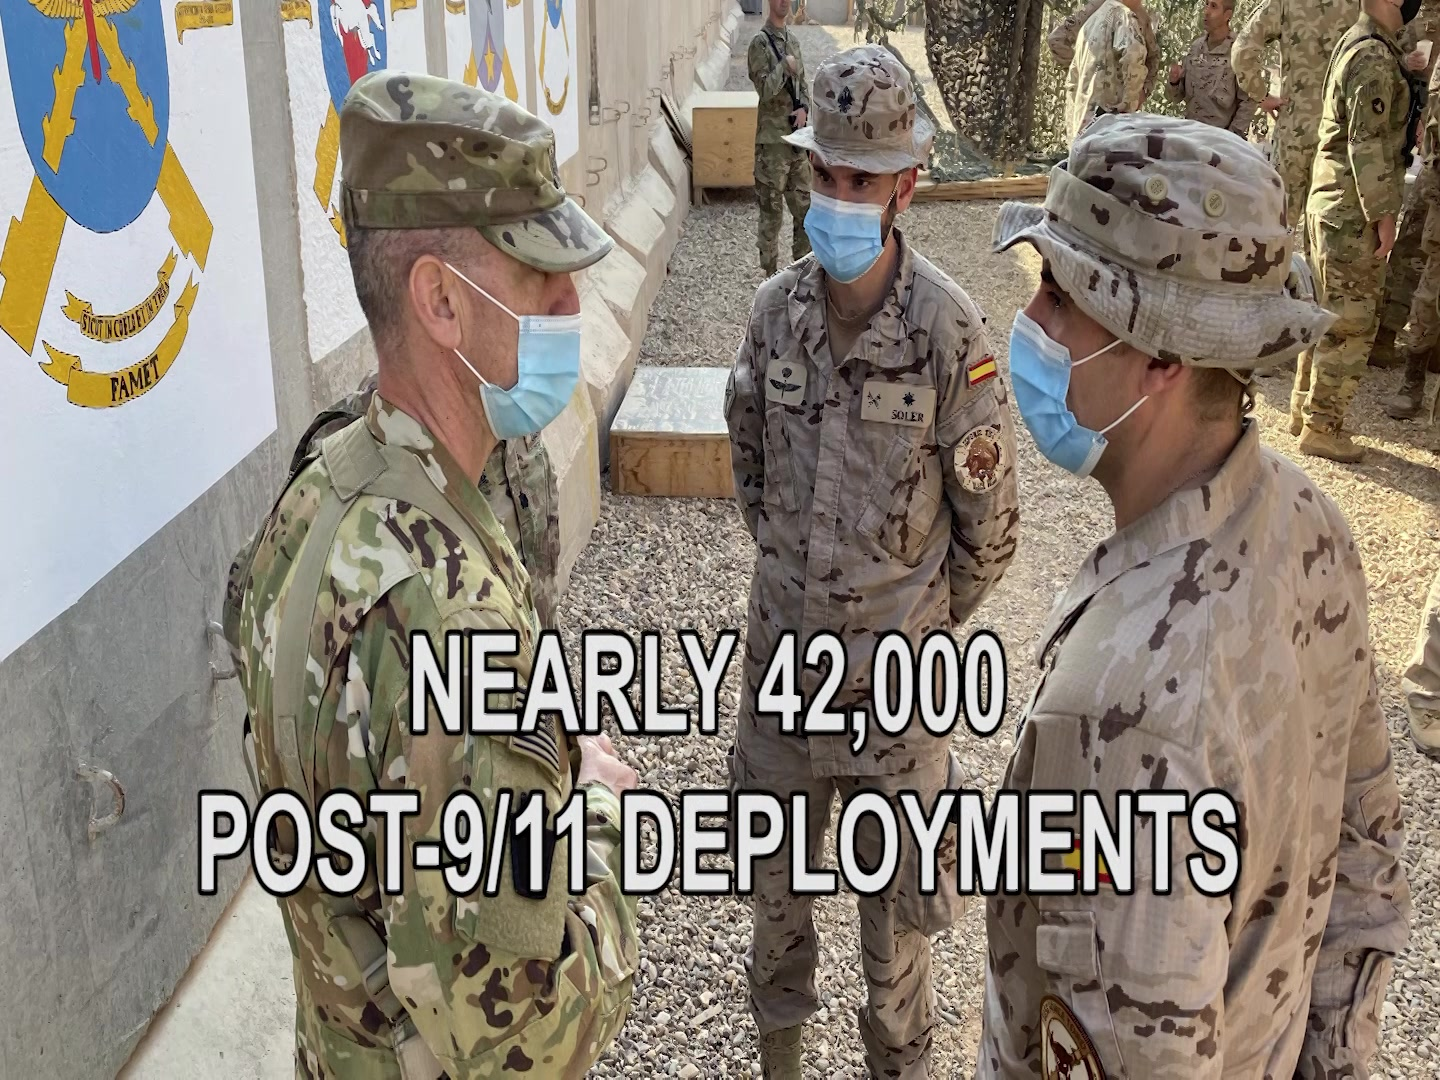 A highlight of the capabilities and accomplishments of the Pennsylvania Department of Military and Veterans Affairs through 2020.